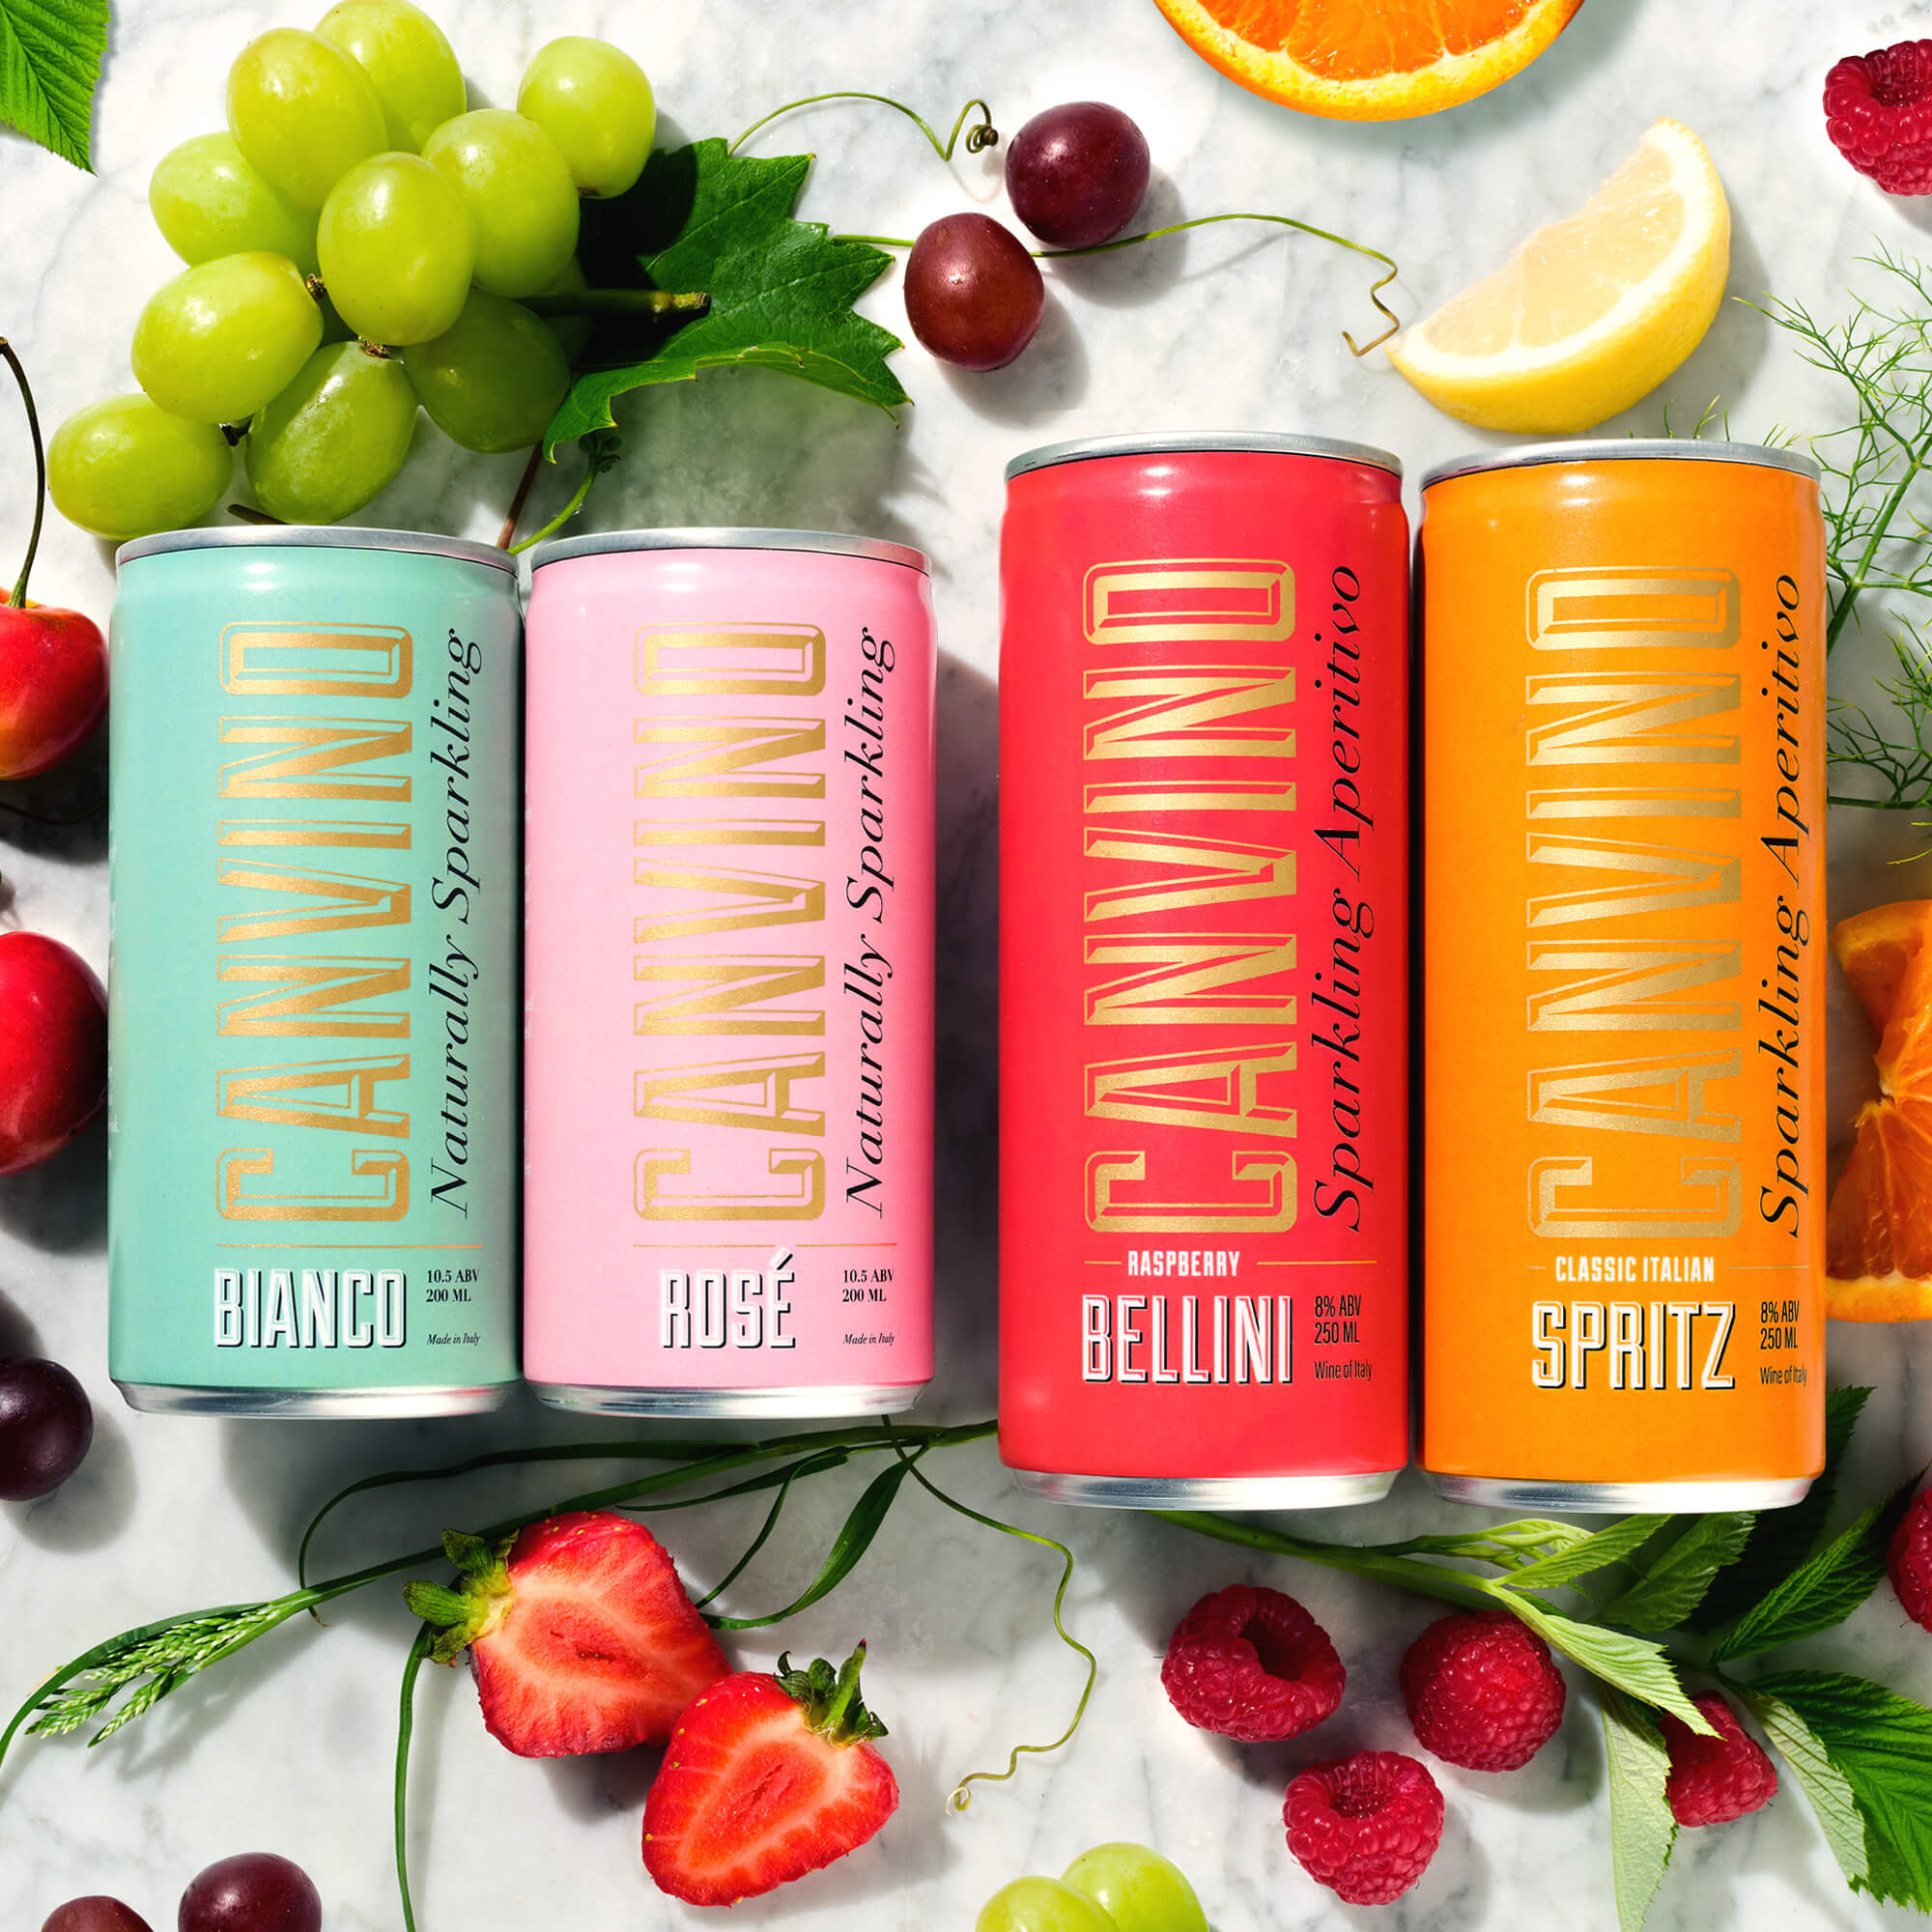 Product shot of Canvino Bianco, Rosé, Bellini and Spritz